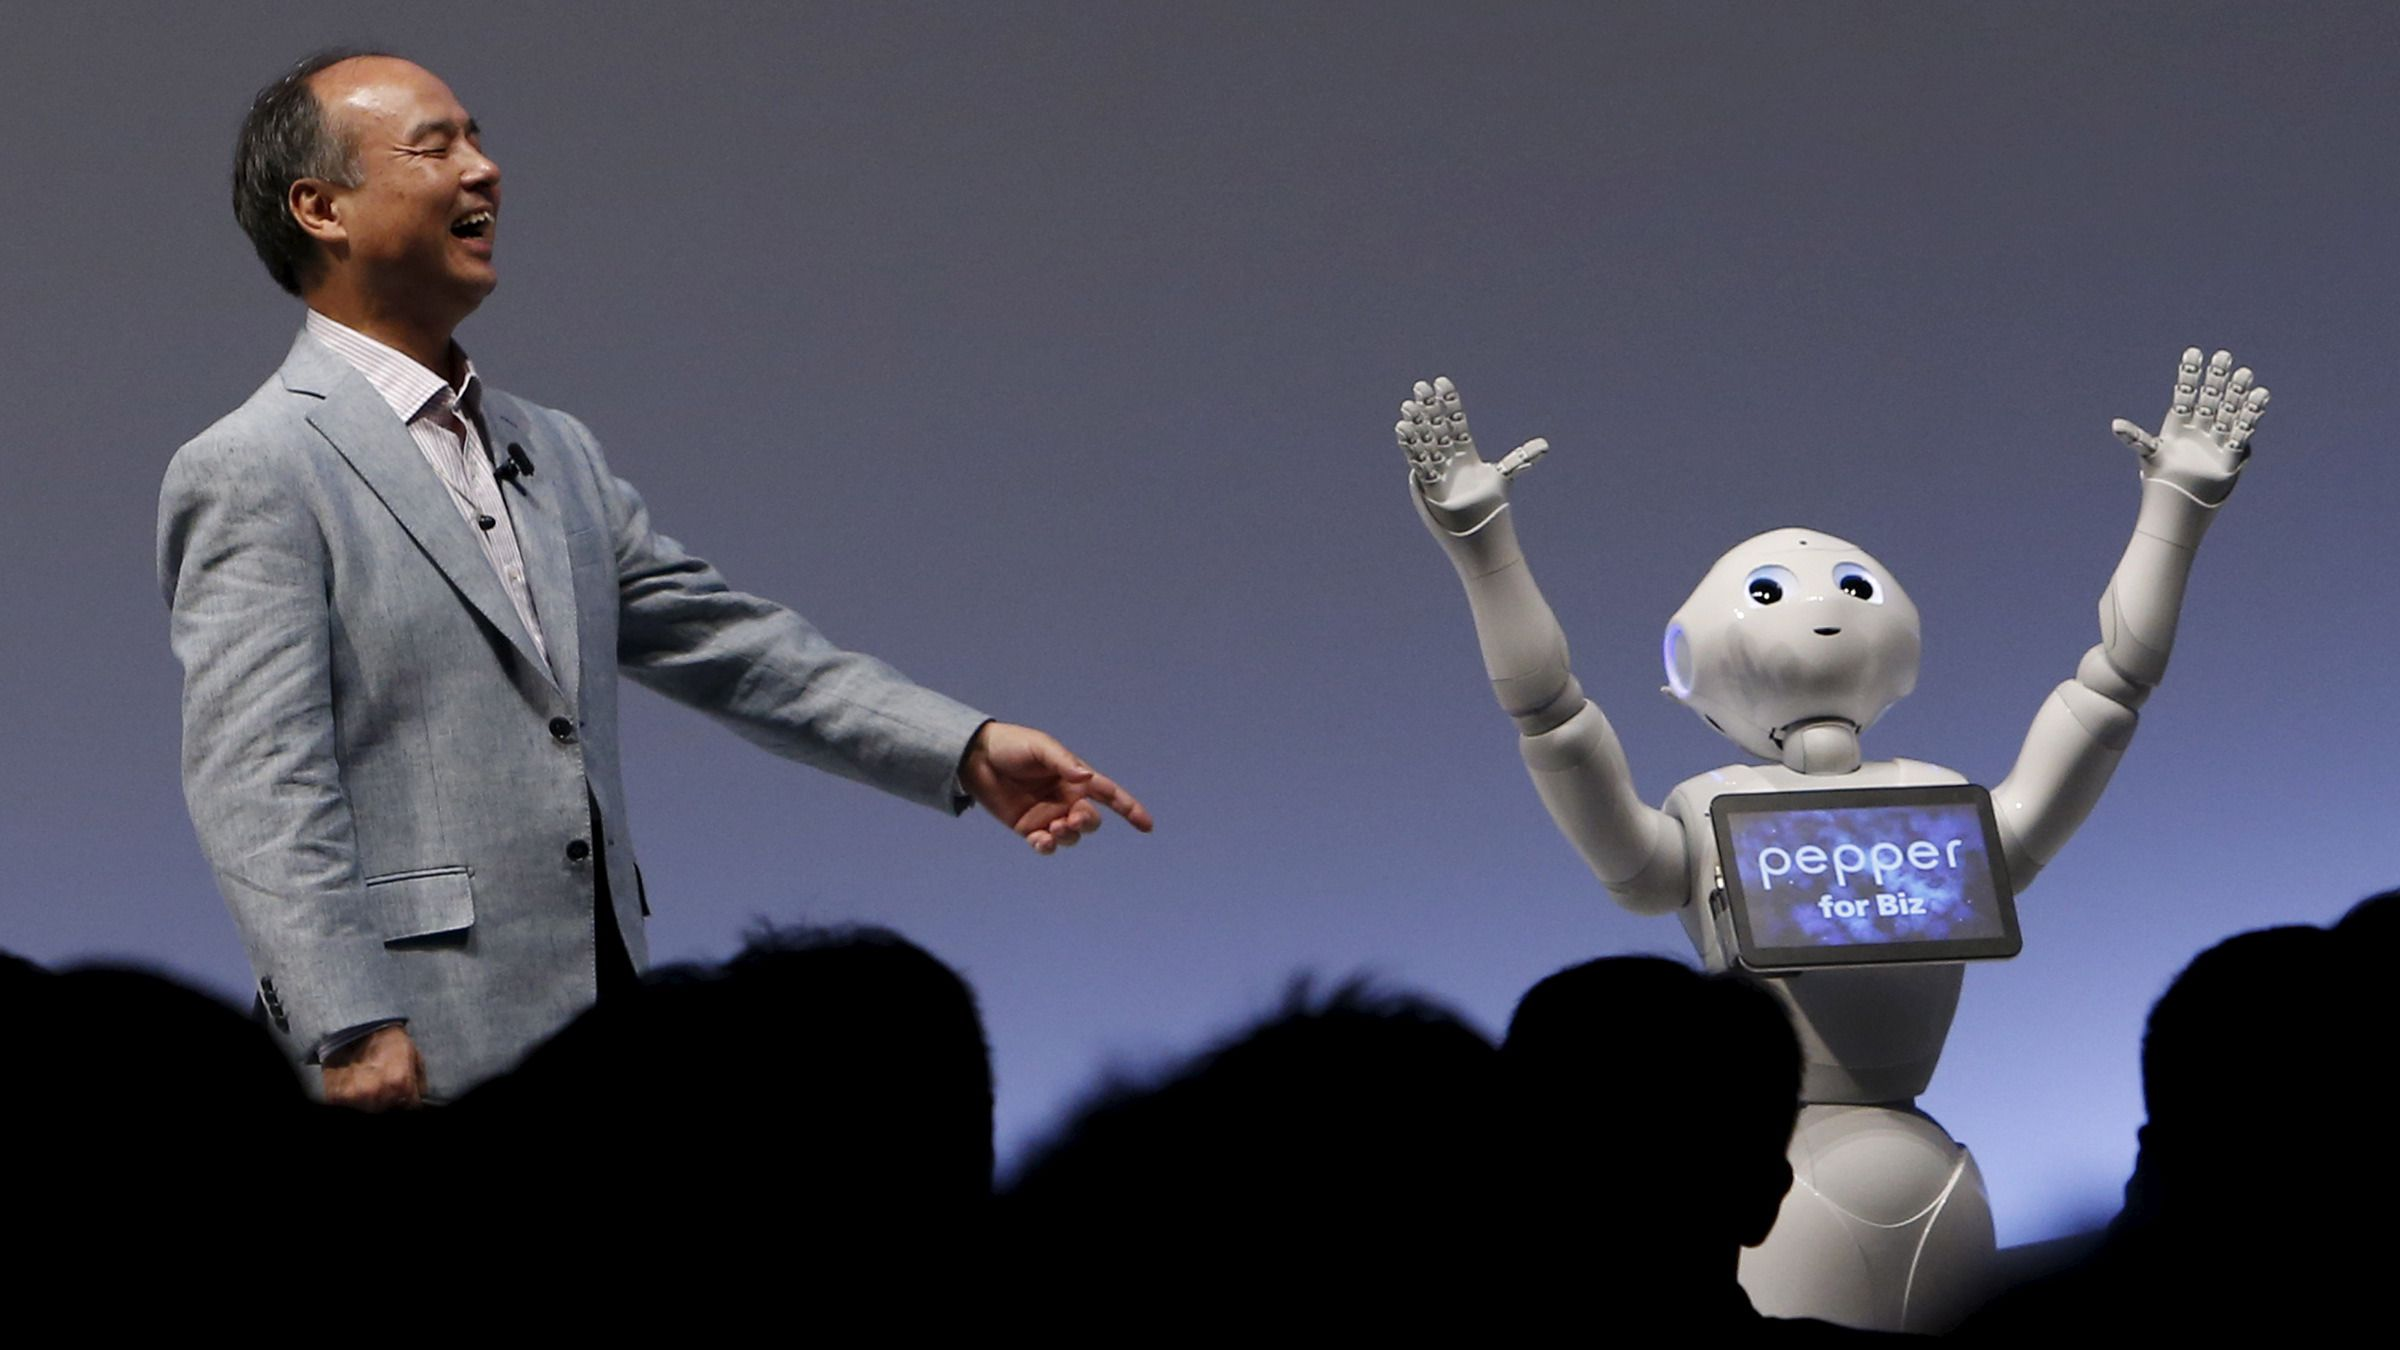 """SoftBank Group Corp. Chairman and CEO Masayoshi Son reacts as SoftBank's human-like robots named """"Pepper"""" performs during the SoftBank World 2015 event in Tokyo, Japan, July 30, 2015."""